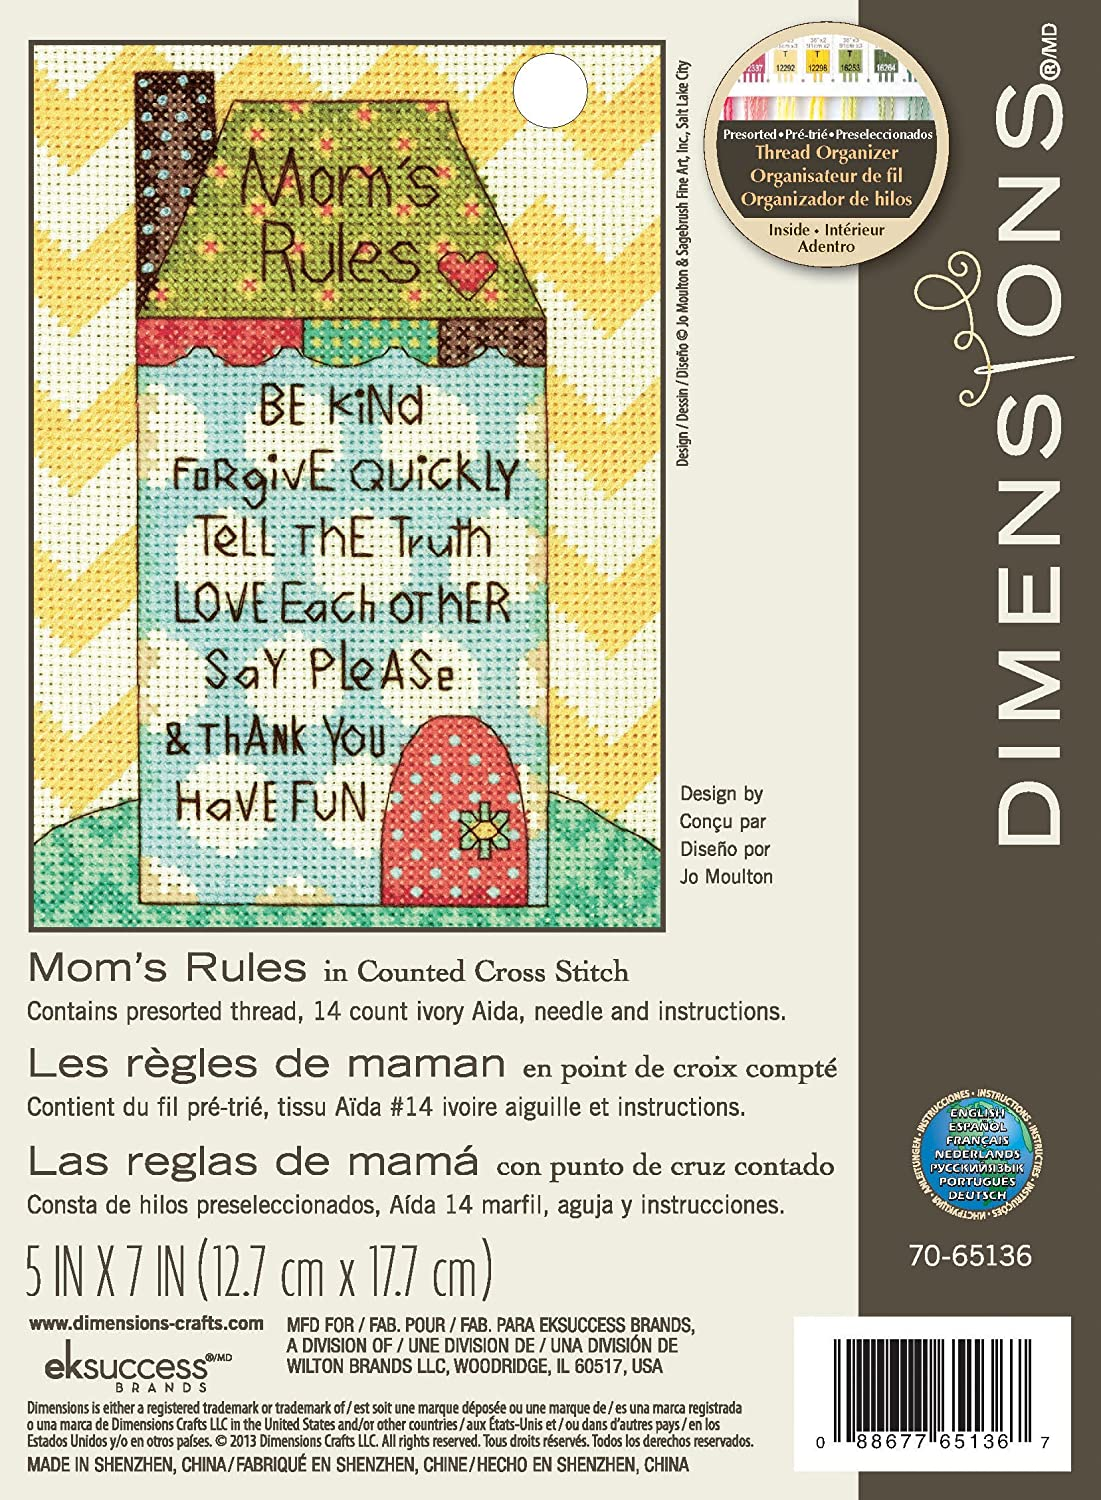 Welcome Each New Day Dimensions 65032 Needlecrafts Counted Cross Stitch